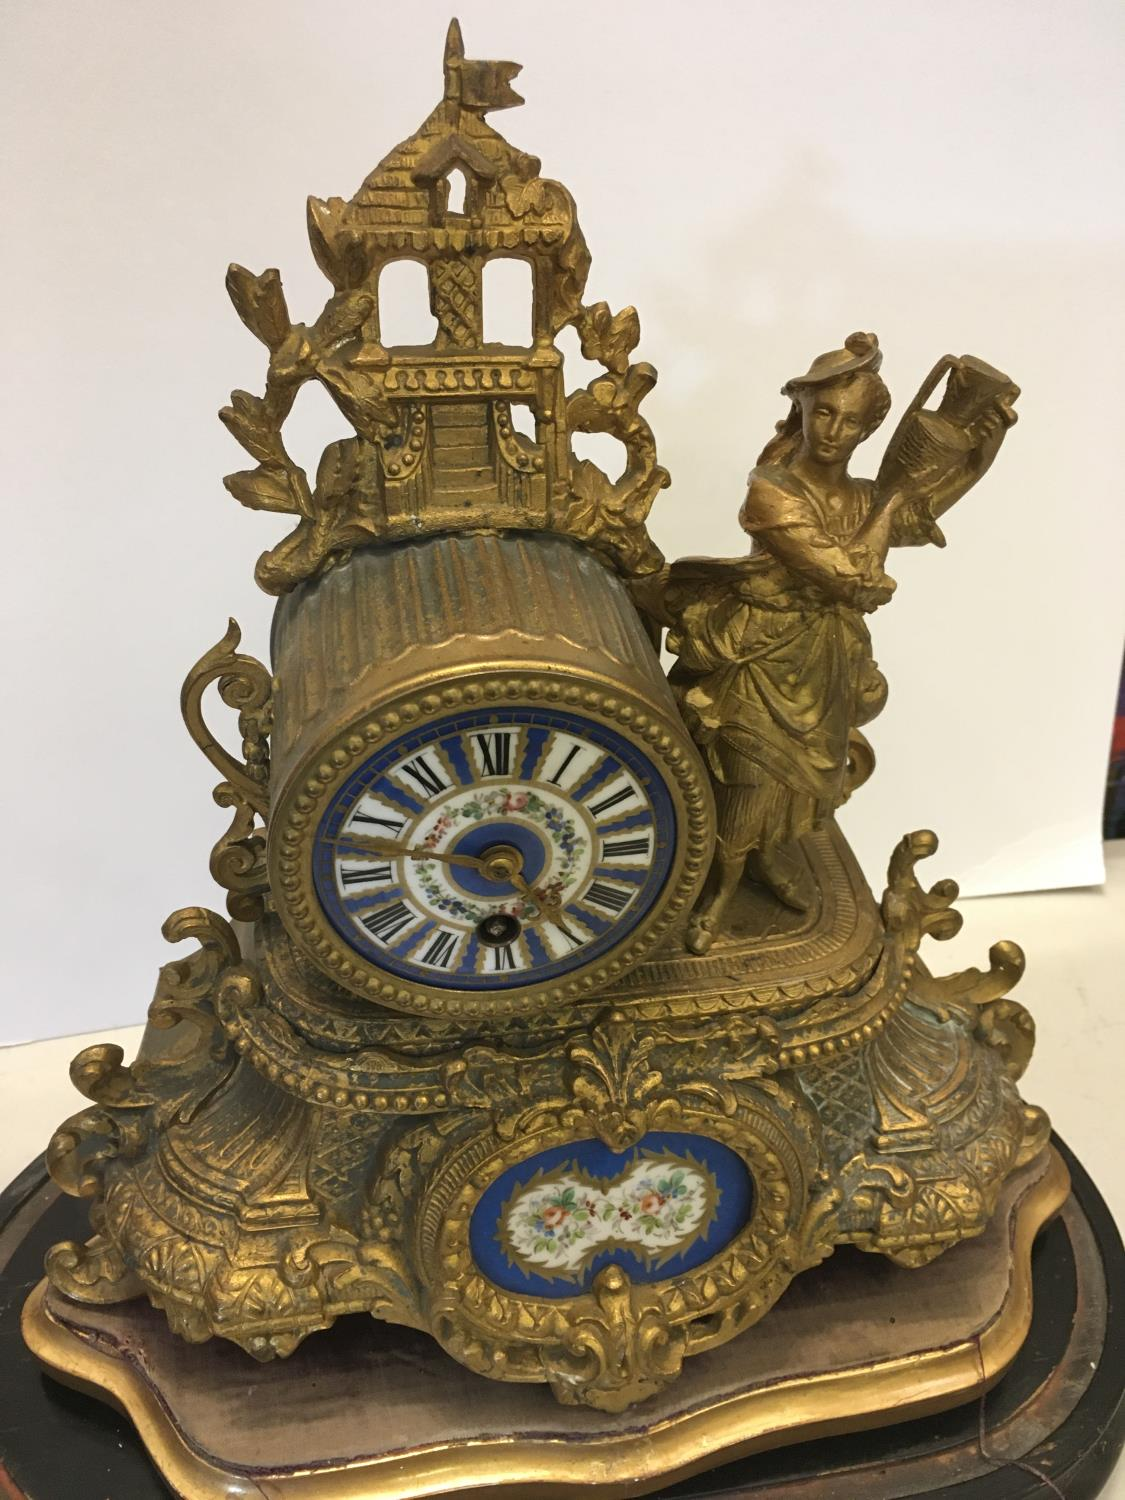 Gilt spelter mantle clock with figural Lady to the side, probably with Sevres plaques on original - Image 3 of 4